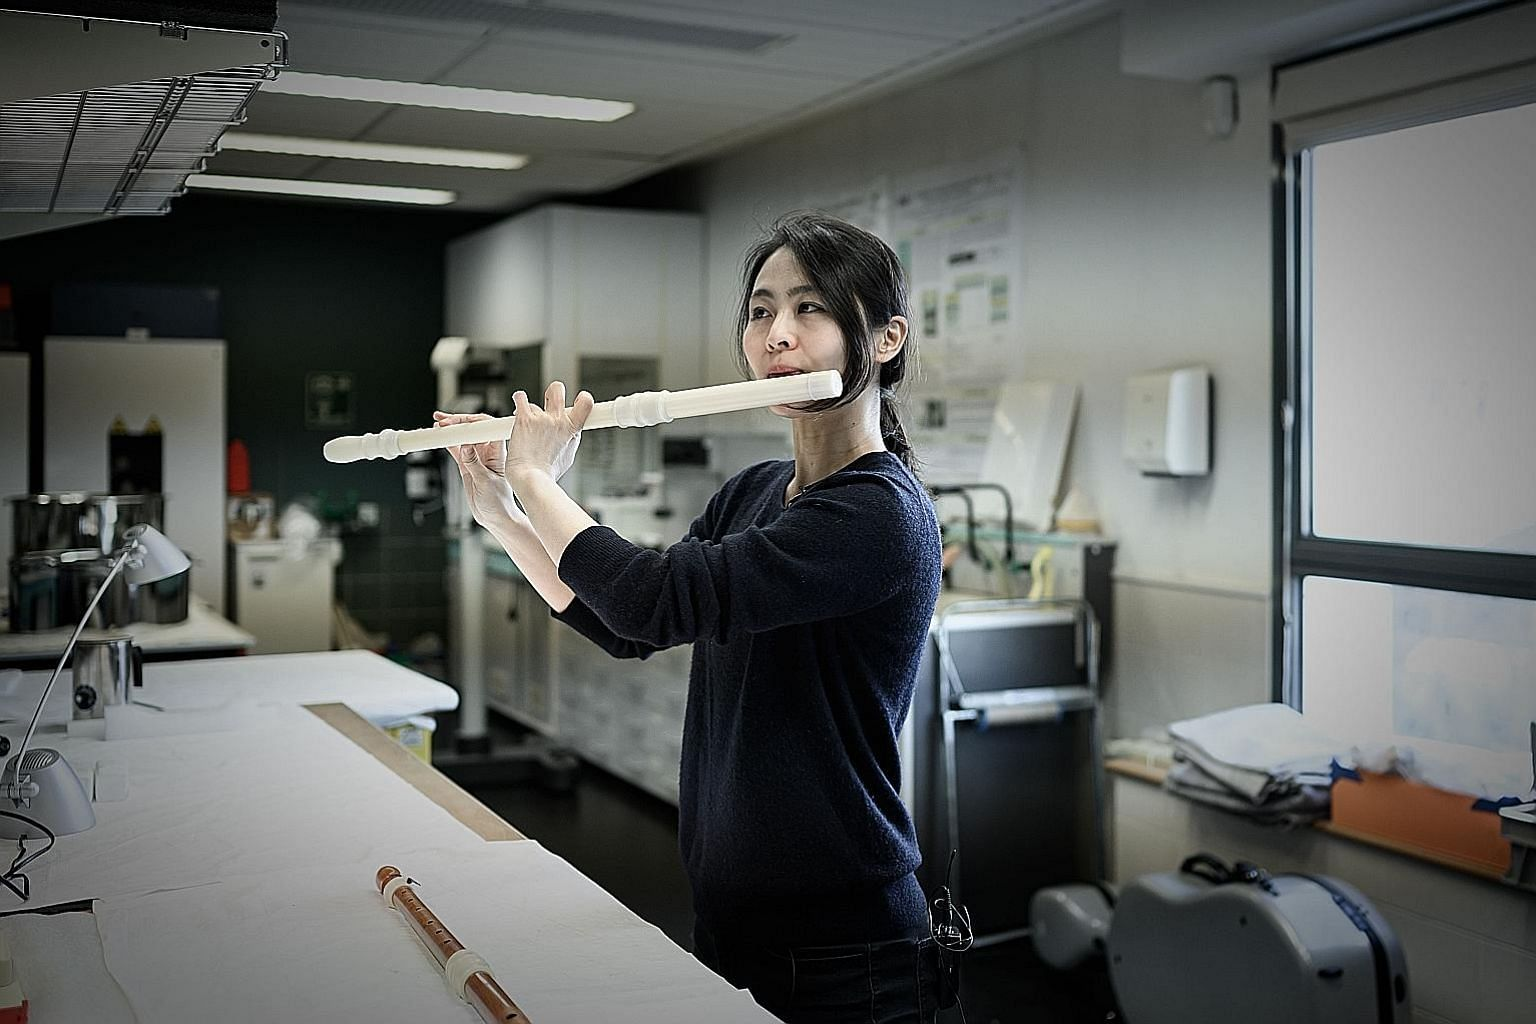 Musician Mina Jang plays the 3D-printed replica of a wooden transverse flute at the music lab of the Museum of Music in Paris.